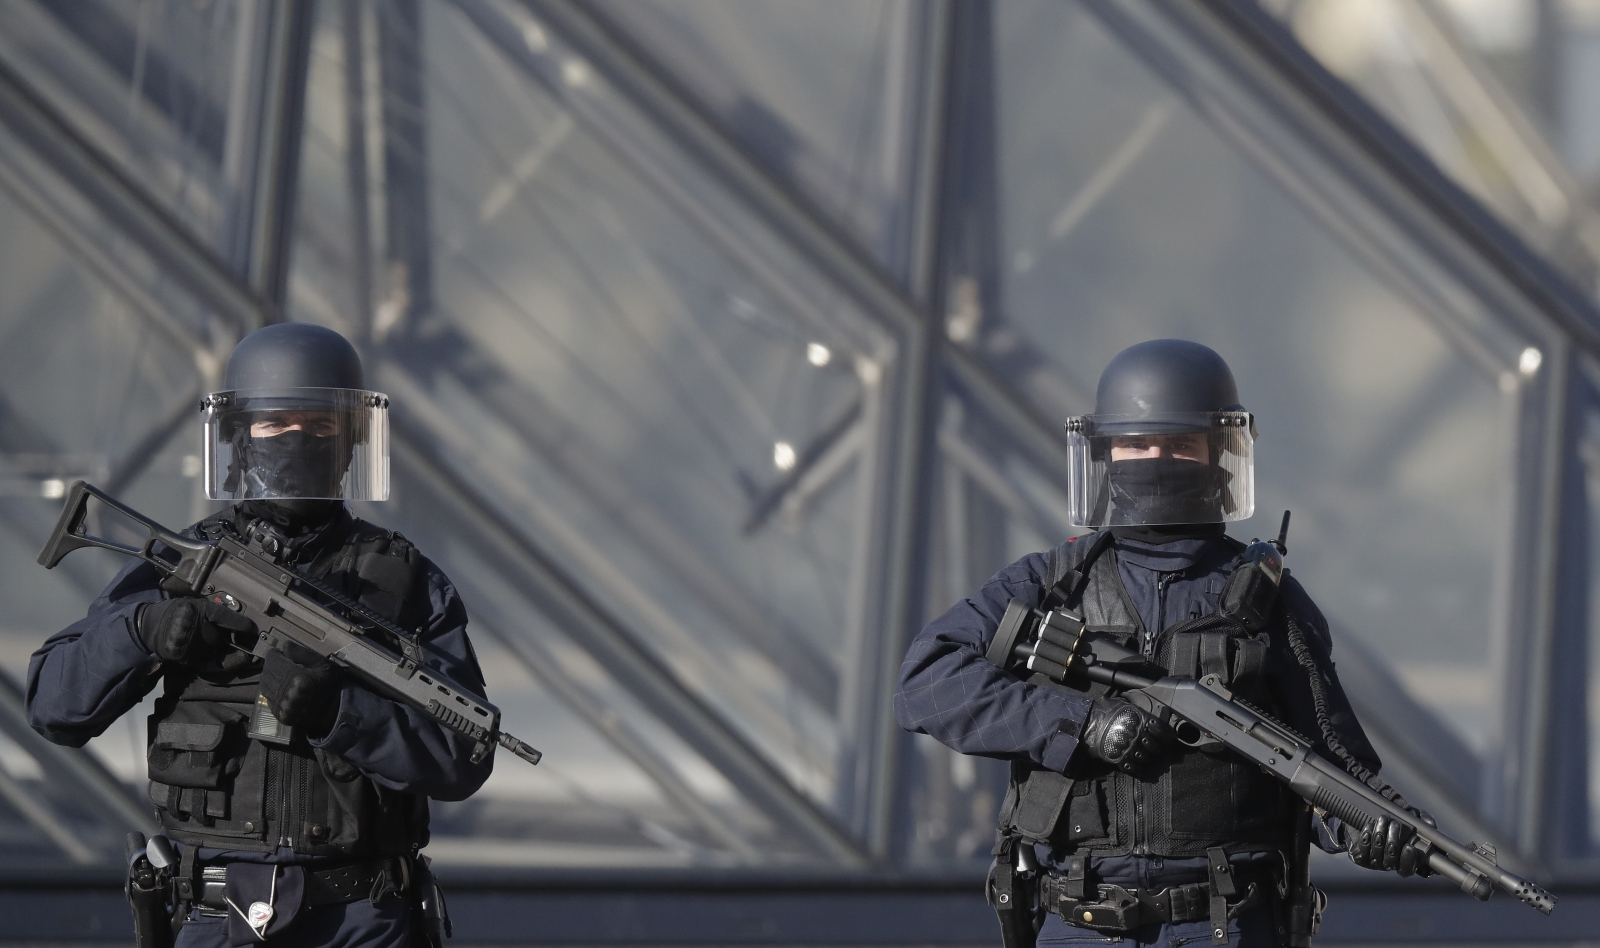 Louvre Shooting: Soldier fires on attacker outside Paris museum